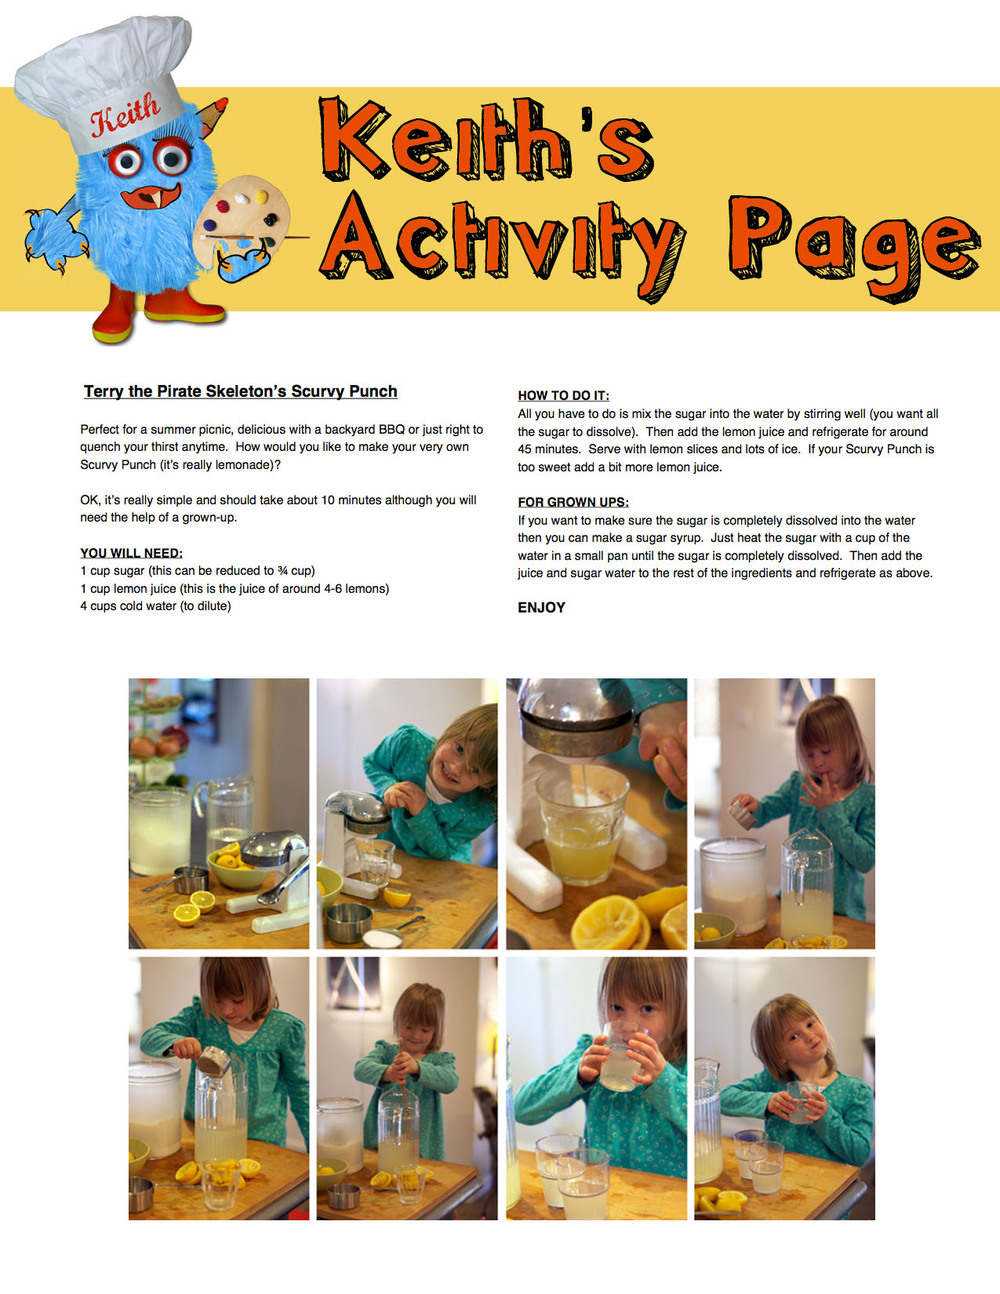 activity page.jpg